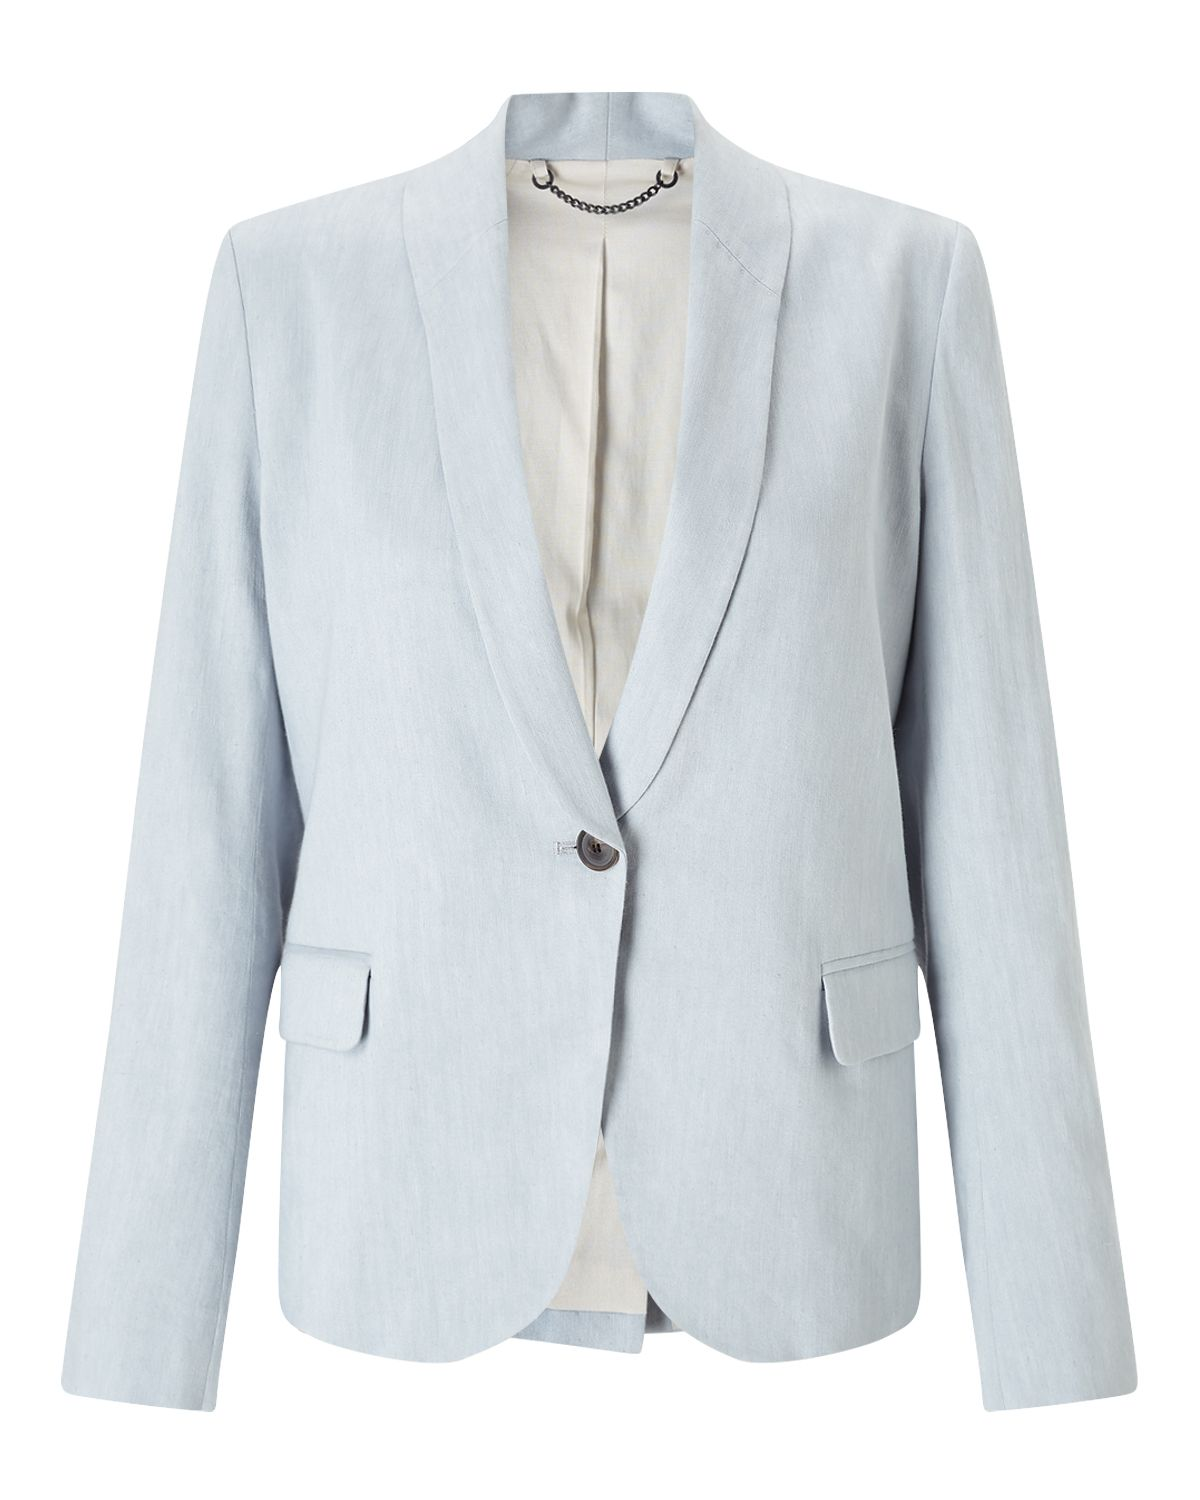 Jigsaw Portofino Shawl Collar Jacket, Grey